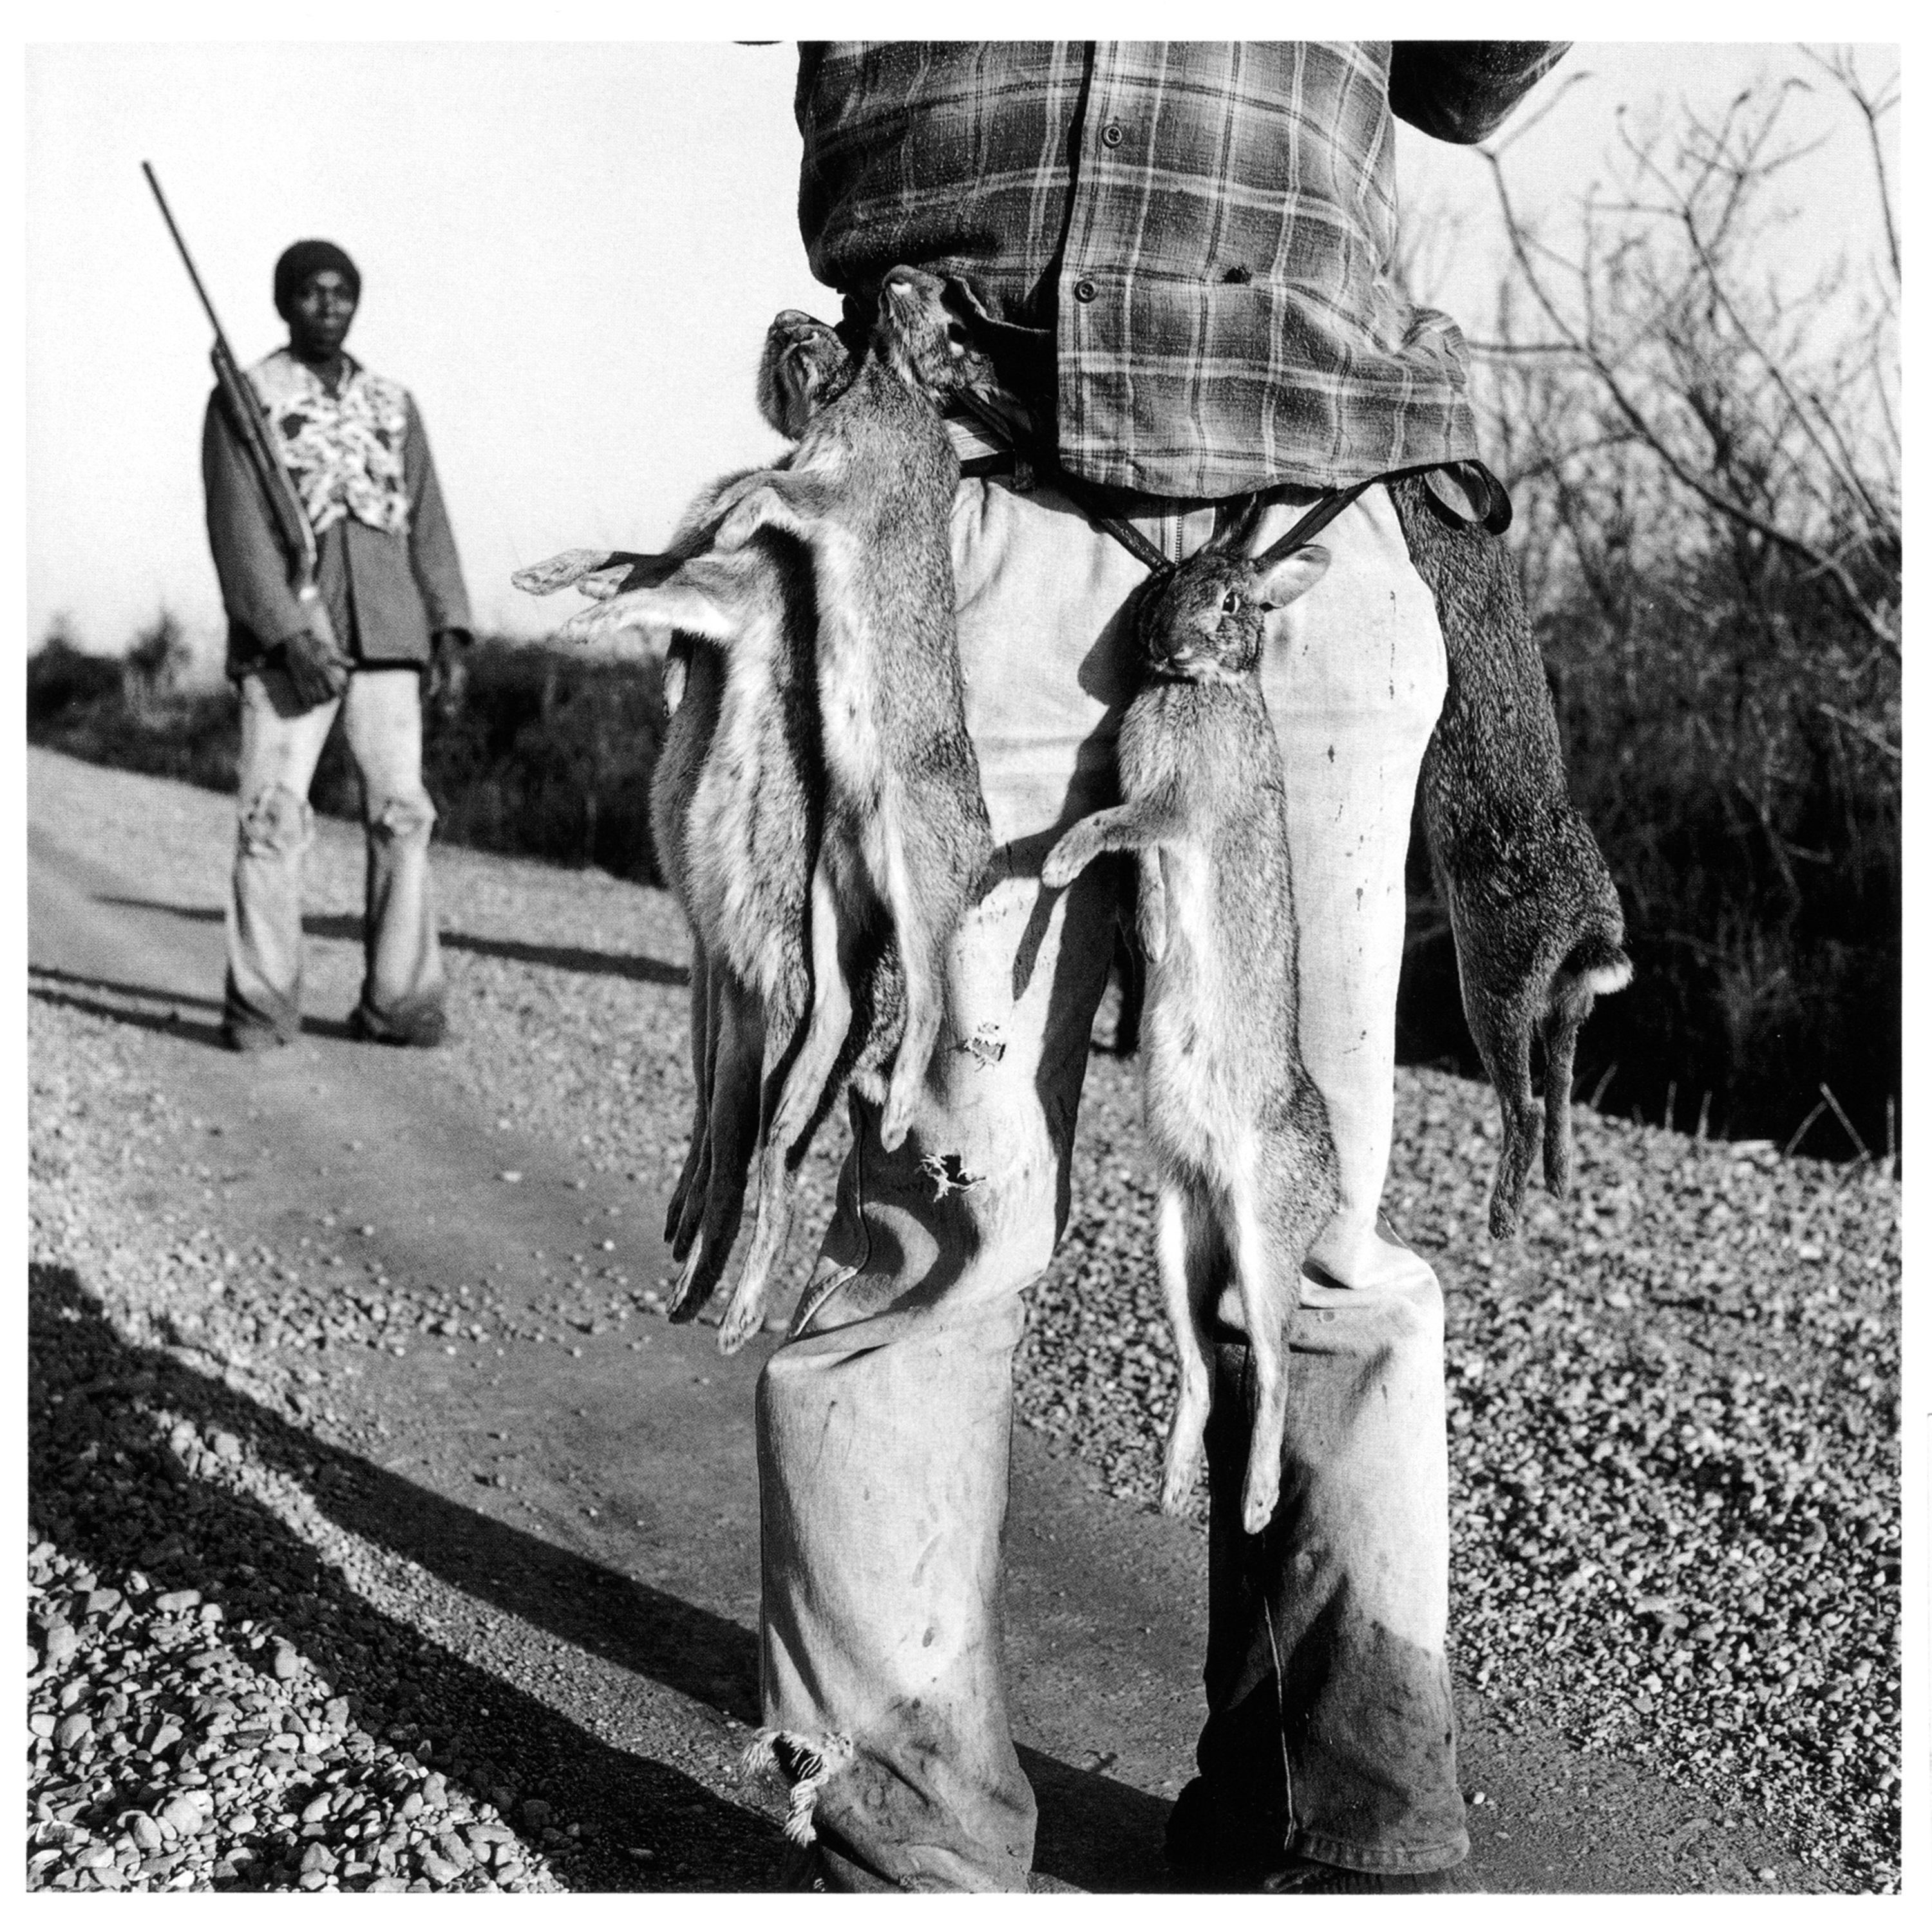 Rabbit Hunters, Lowndes County, Mississippi, 1980. Photo by Birney Imes.